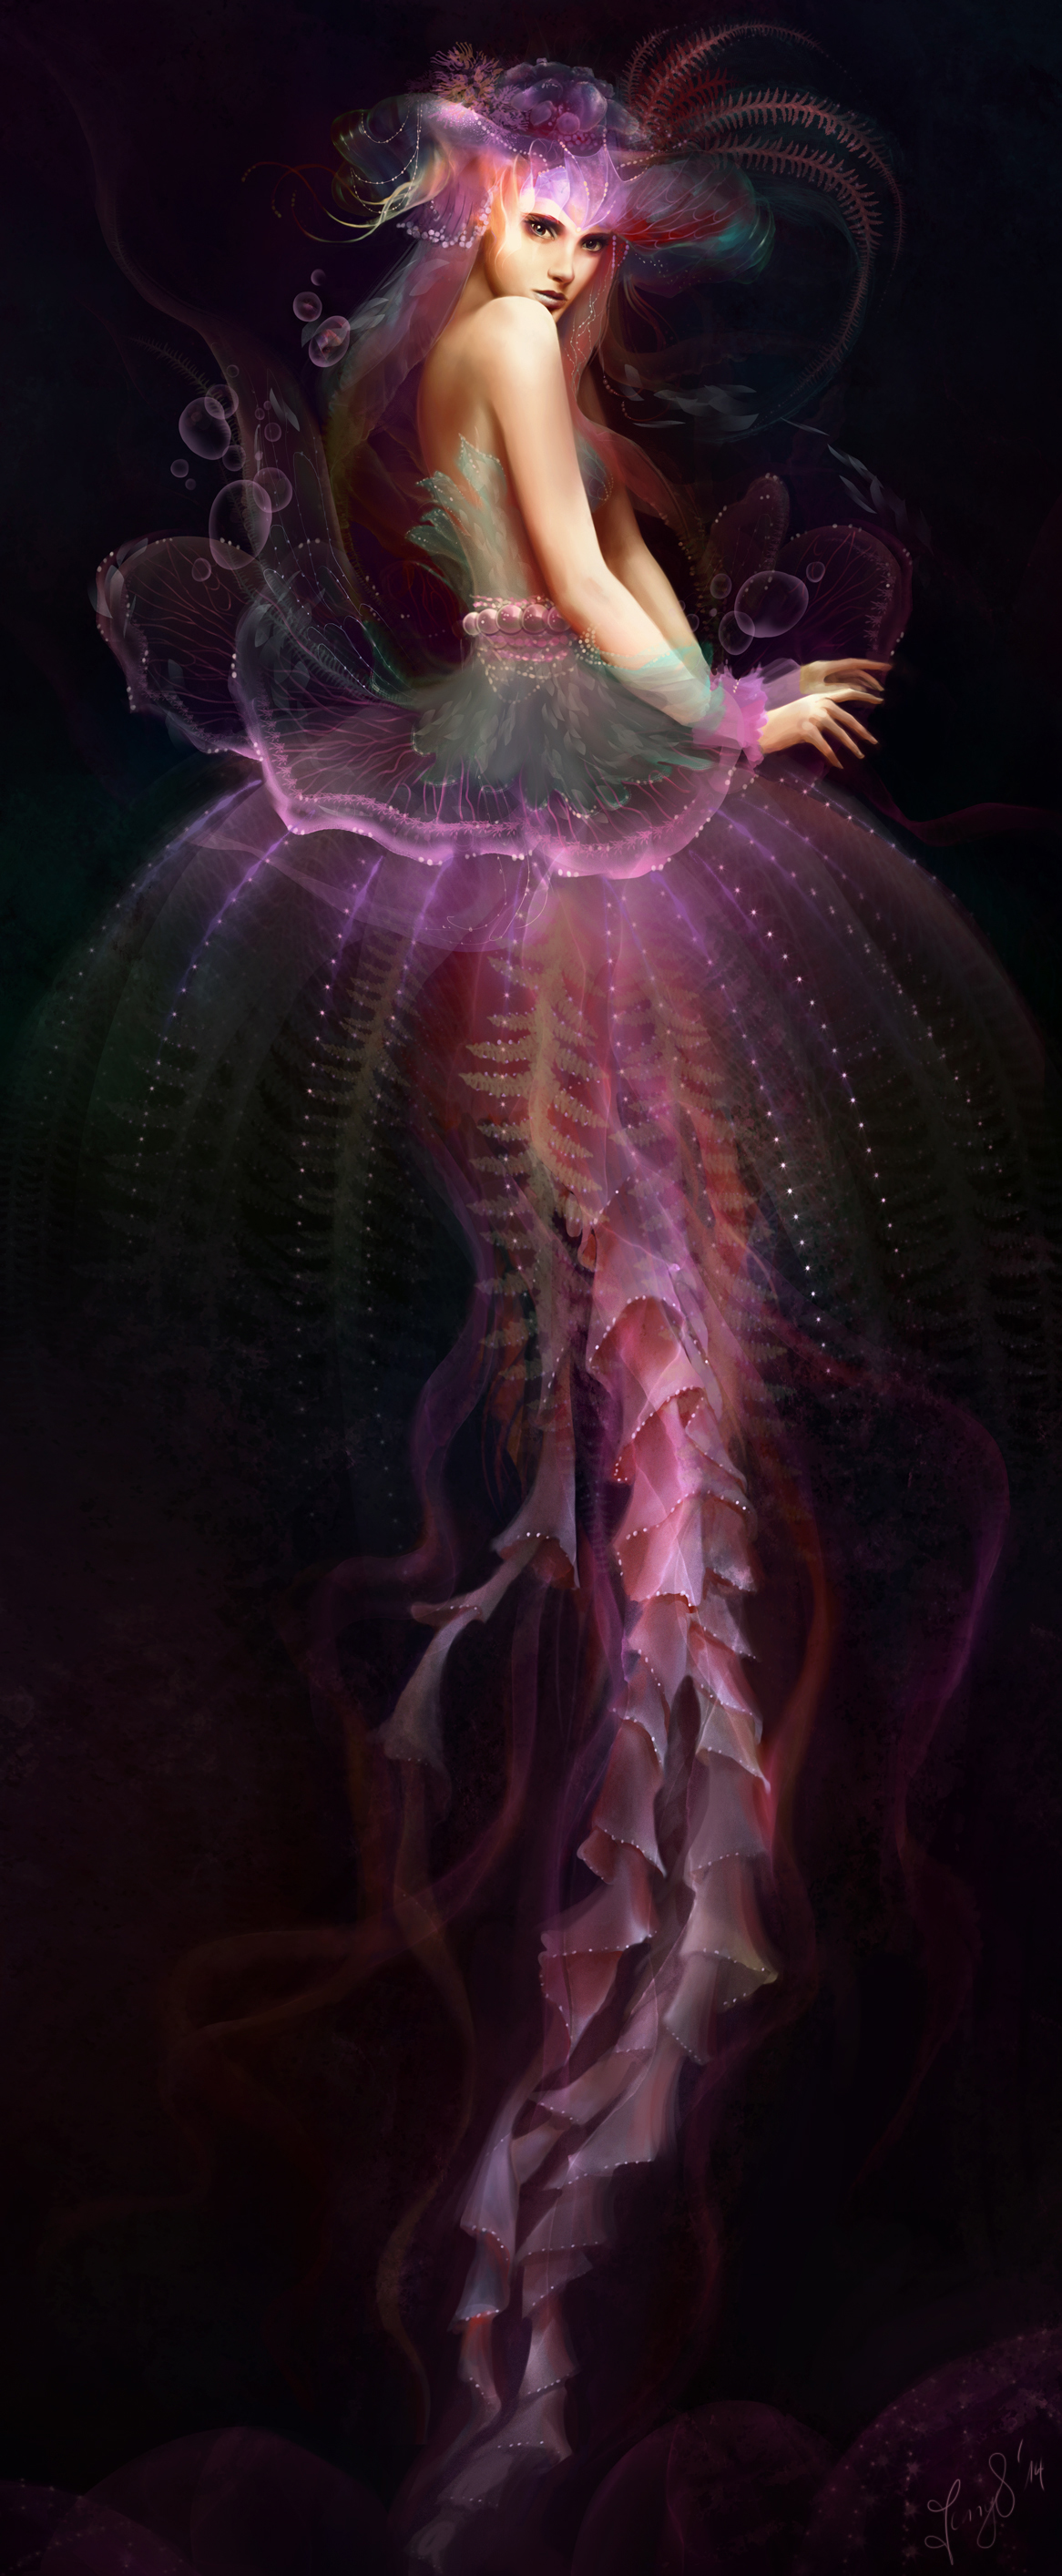 The jellyfish queen by jennyeight on deviantart for Jelly fish painting